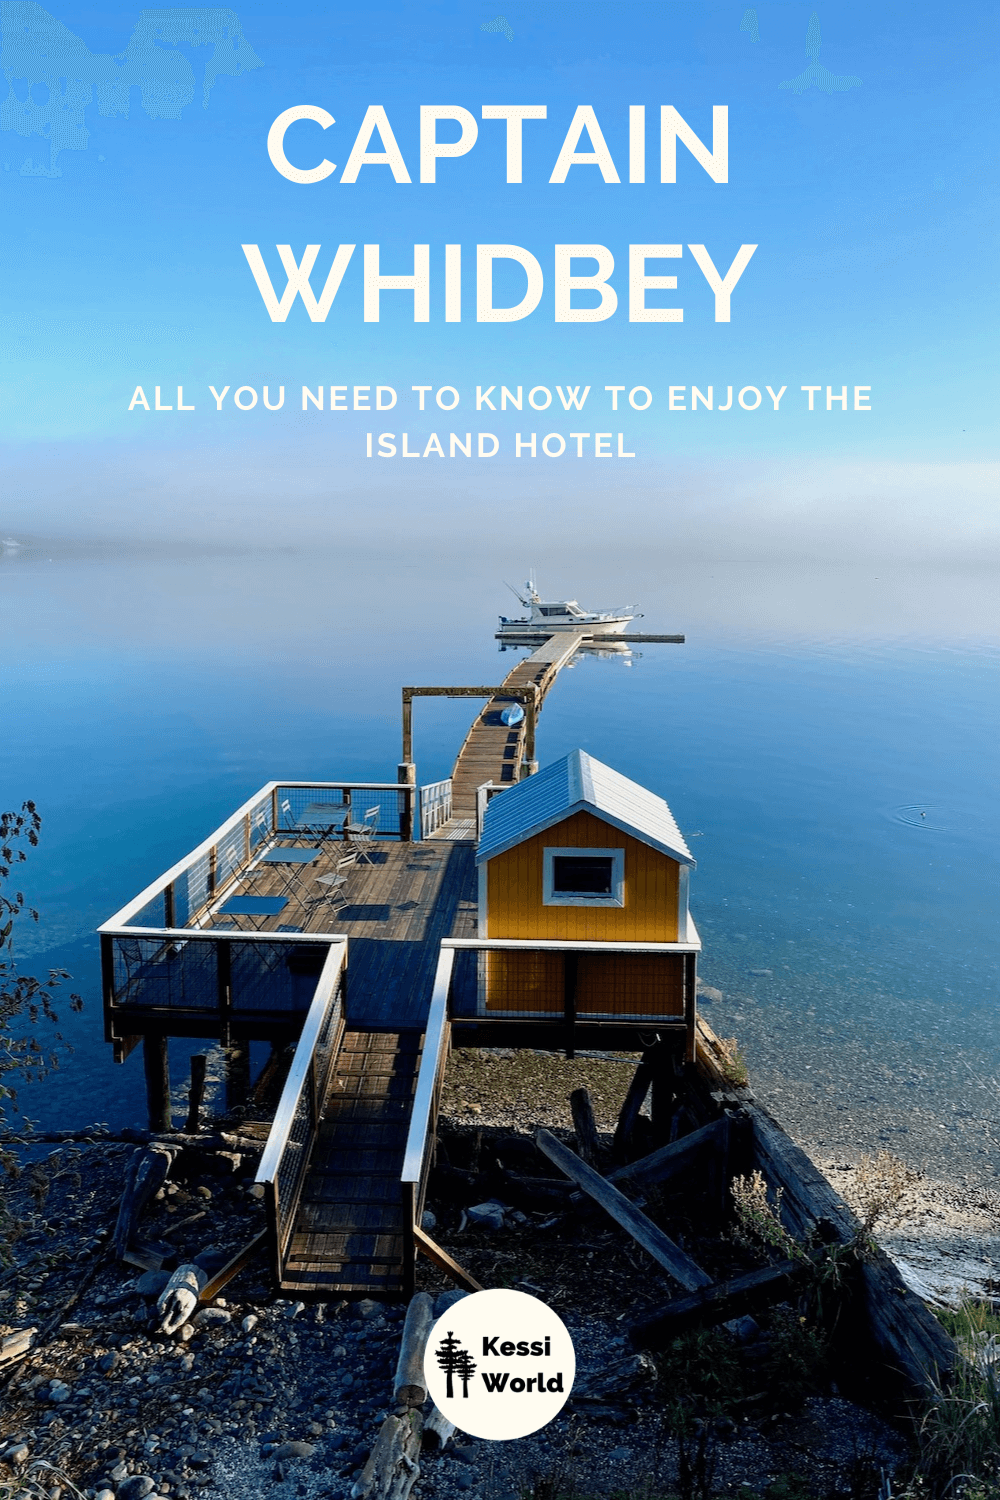 This Pinterest tile shows the dock at Captain Whidbey, which projects into Penn Cove, which in this morning view has fog fading off into the horizon. There is a yellow boat house with white trim on the top larger dock structure and the sky is a bright blue.